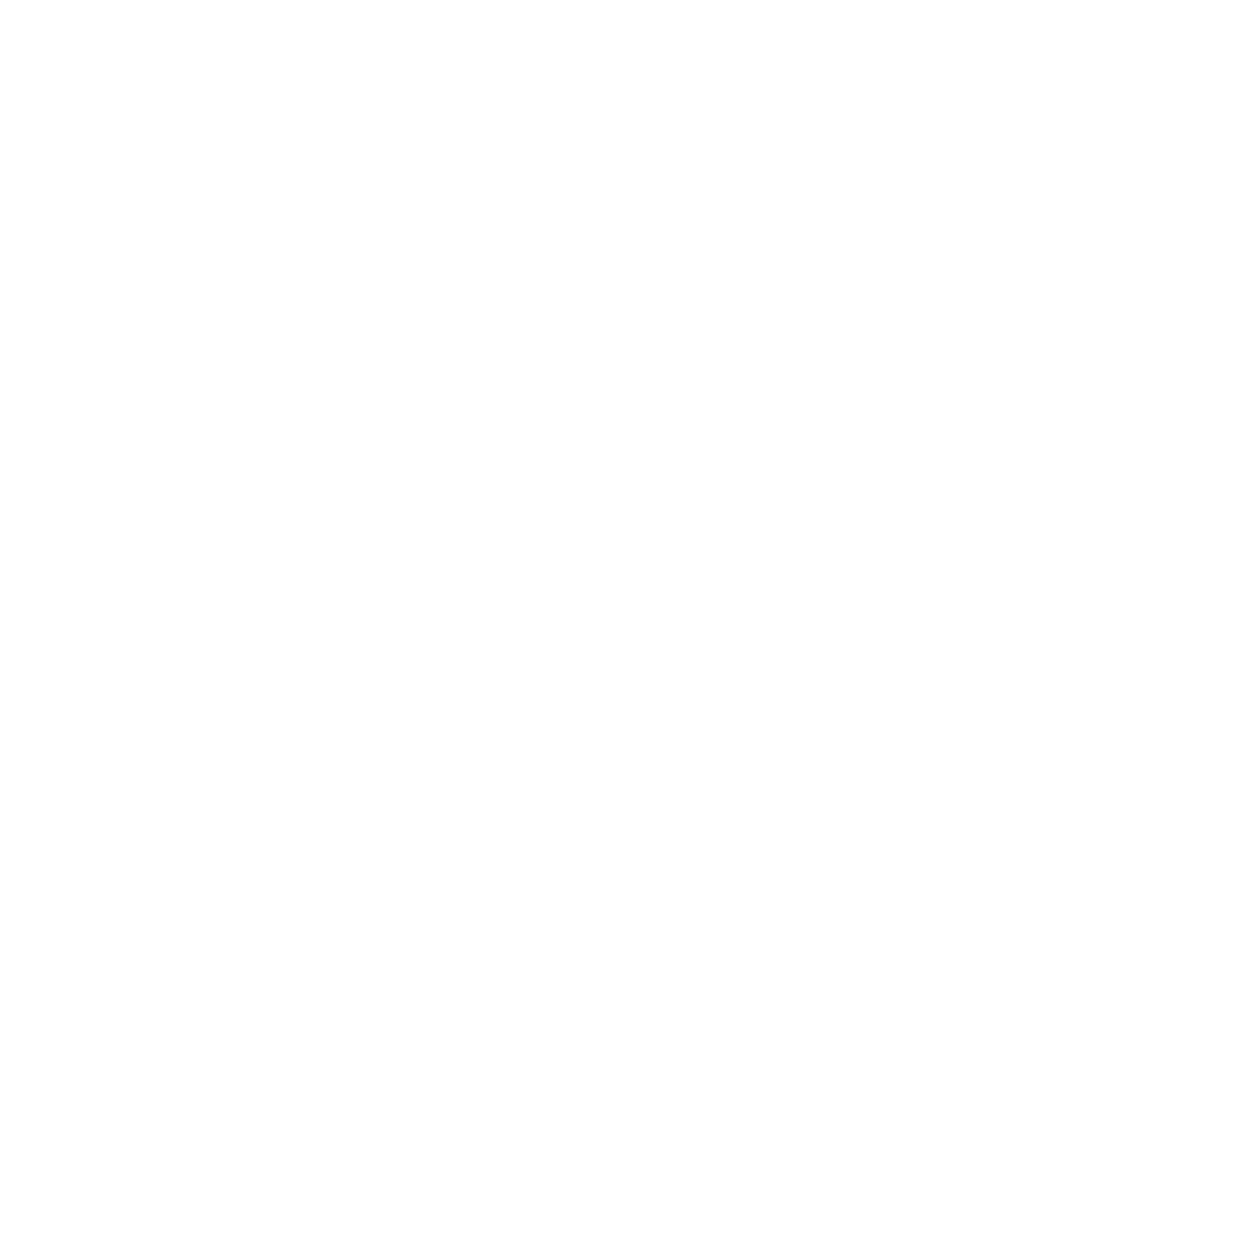 State of Alaska Senior and Disability Services